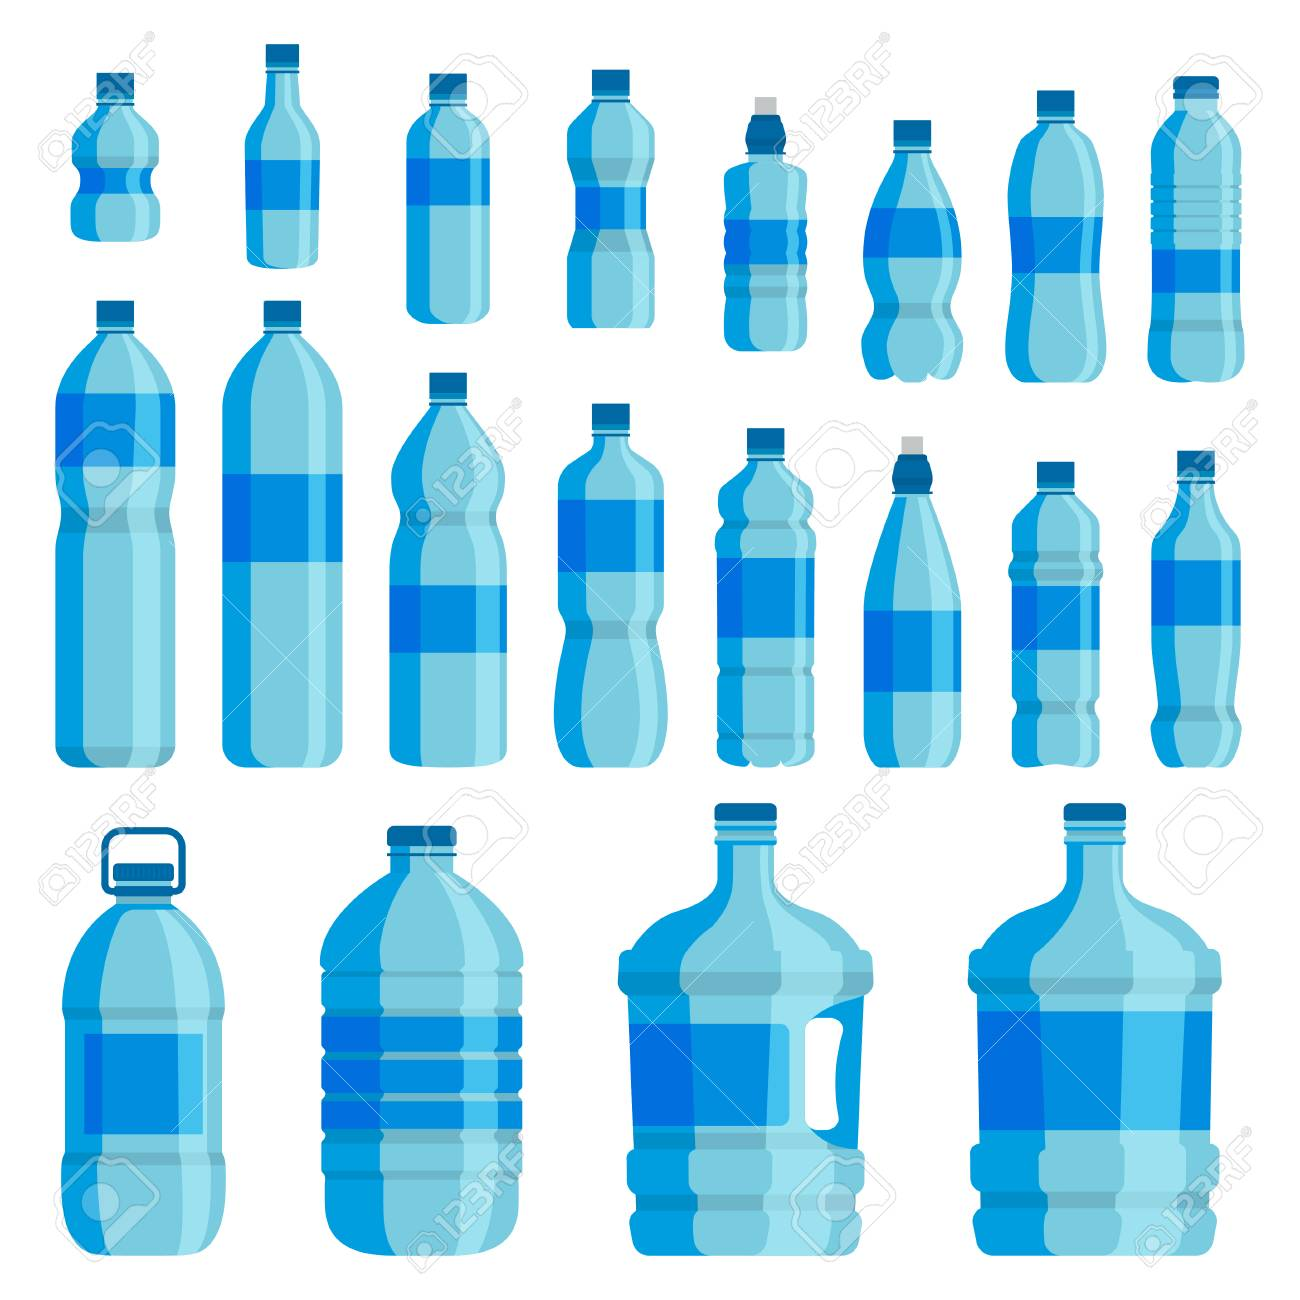 Plastic bottle water set. Blue drinking water packaged in PET Bottle, recyclable and easy to store liquids. Vector flat style cartoon illustration isolated on white background - 90590070